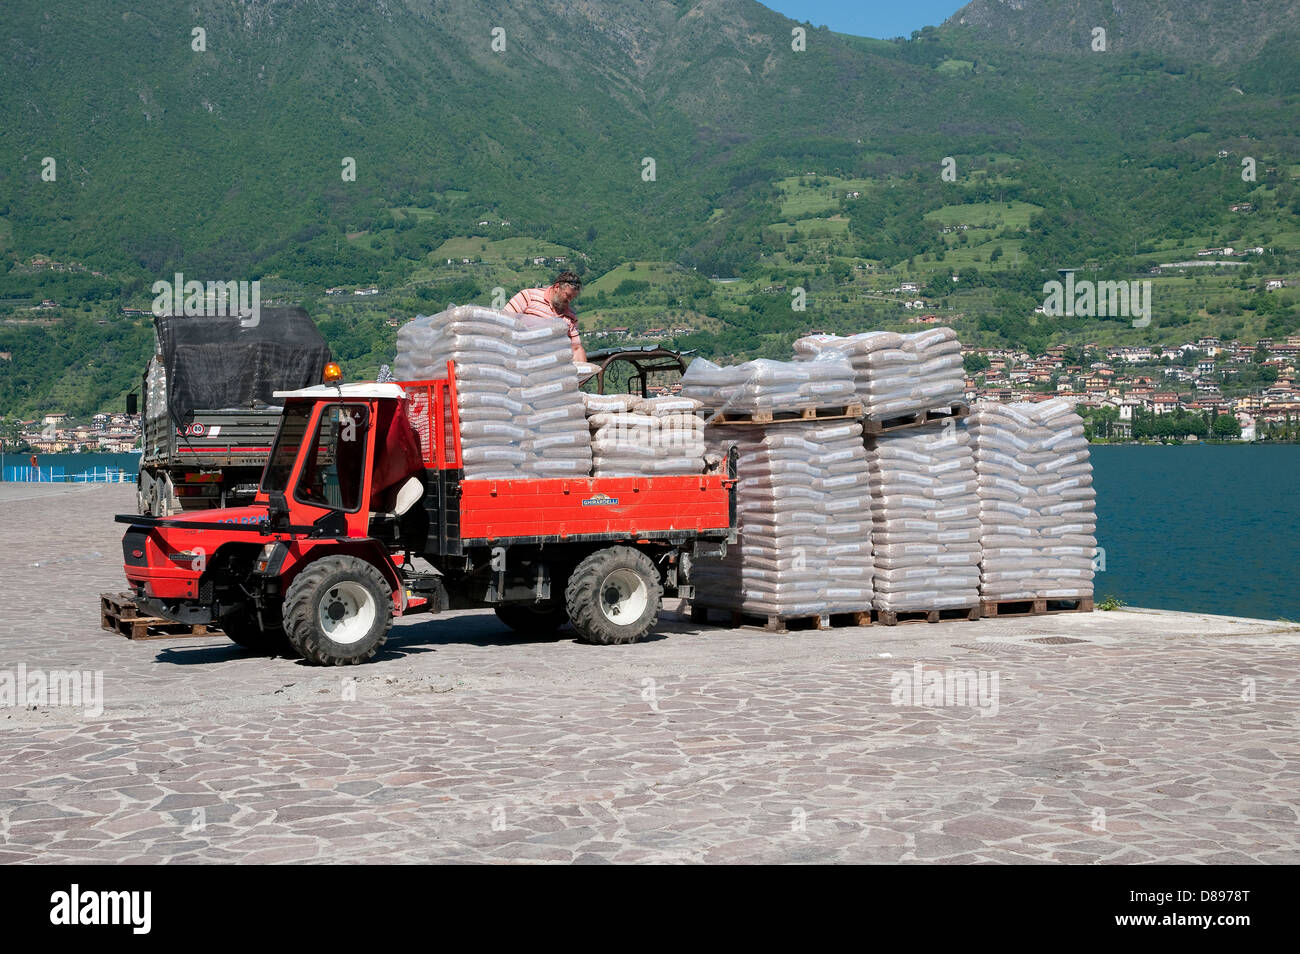 loading small truck with bags, monte isola, lake iseo, lombardy, italy - Stock Image